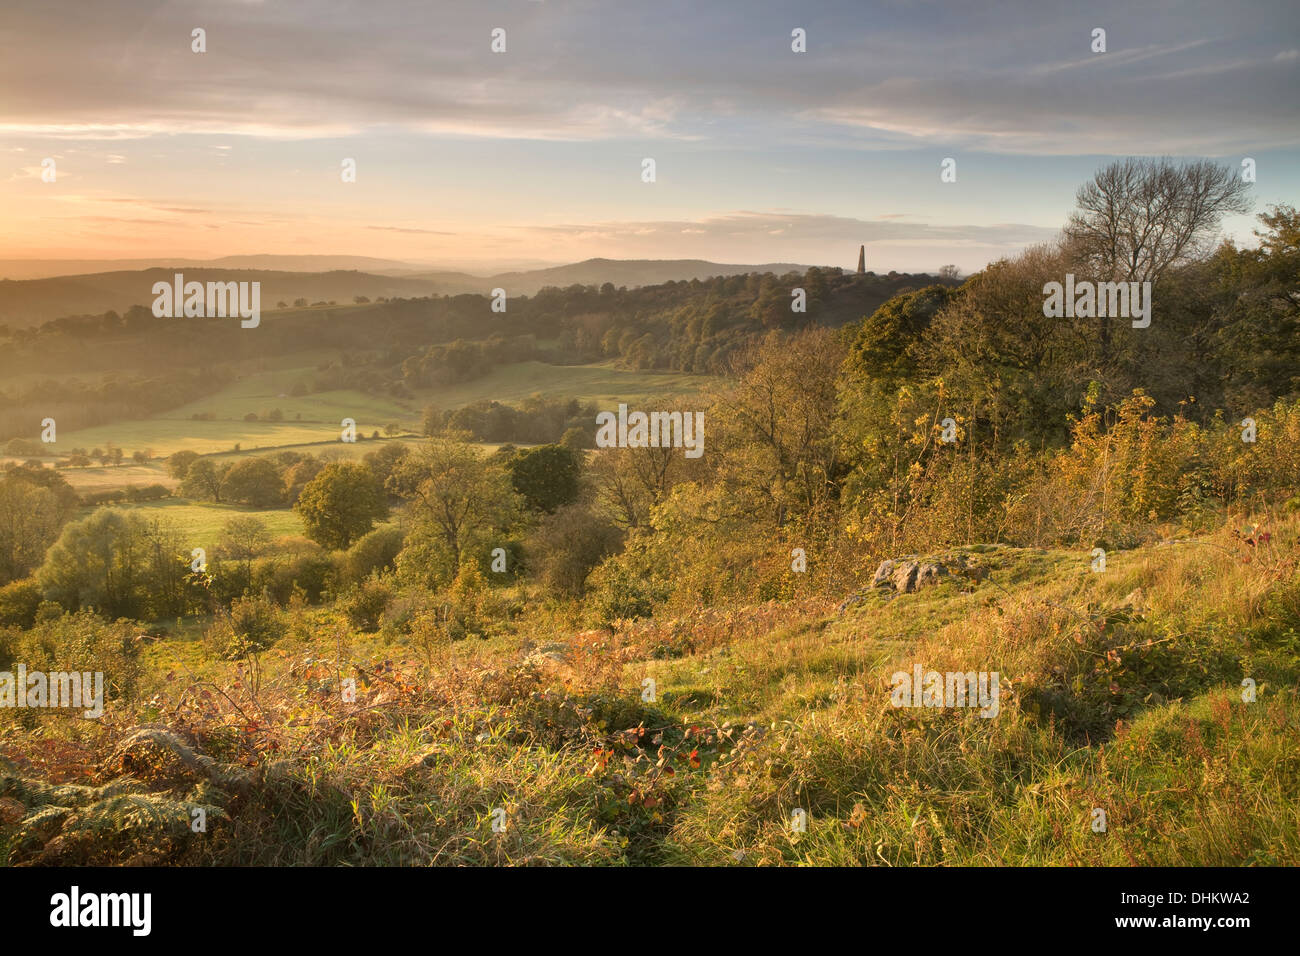 This photograph was taken from Midsummer Hill on the Malvern Hills, Herefordshire, at sunset. Stock Photo